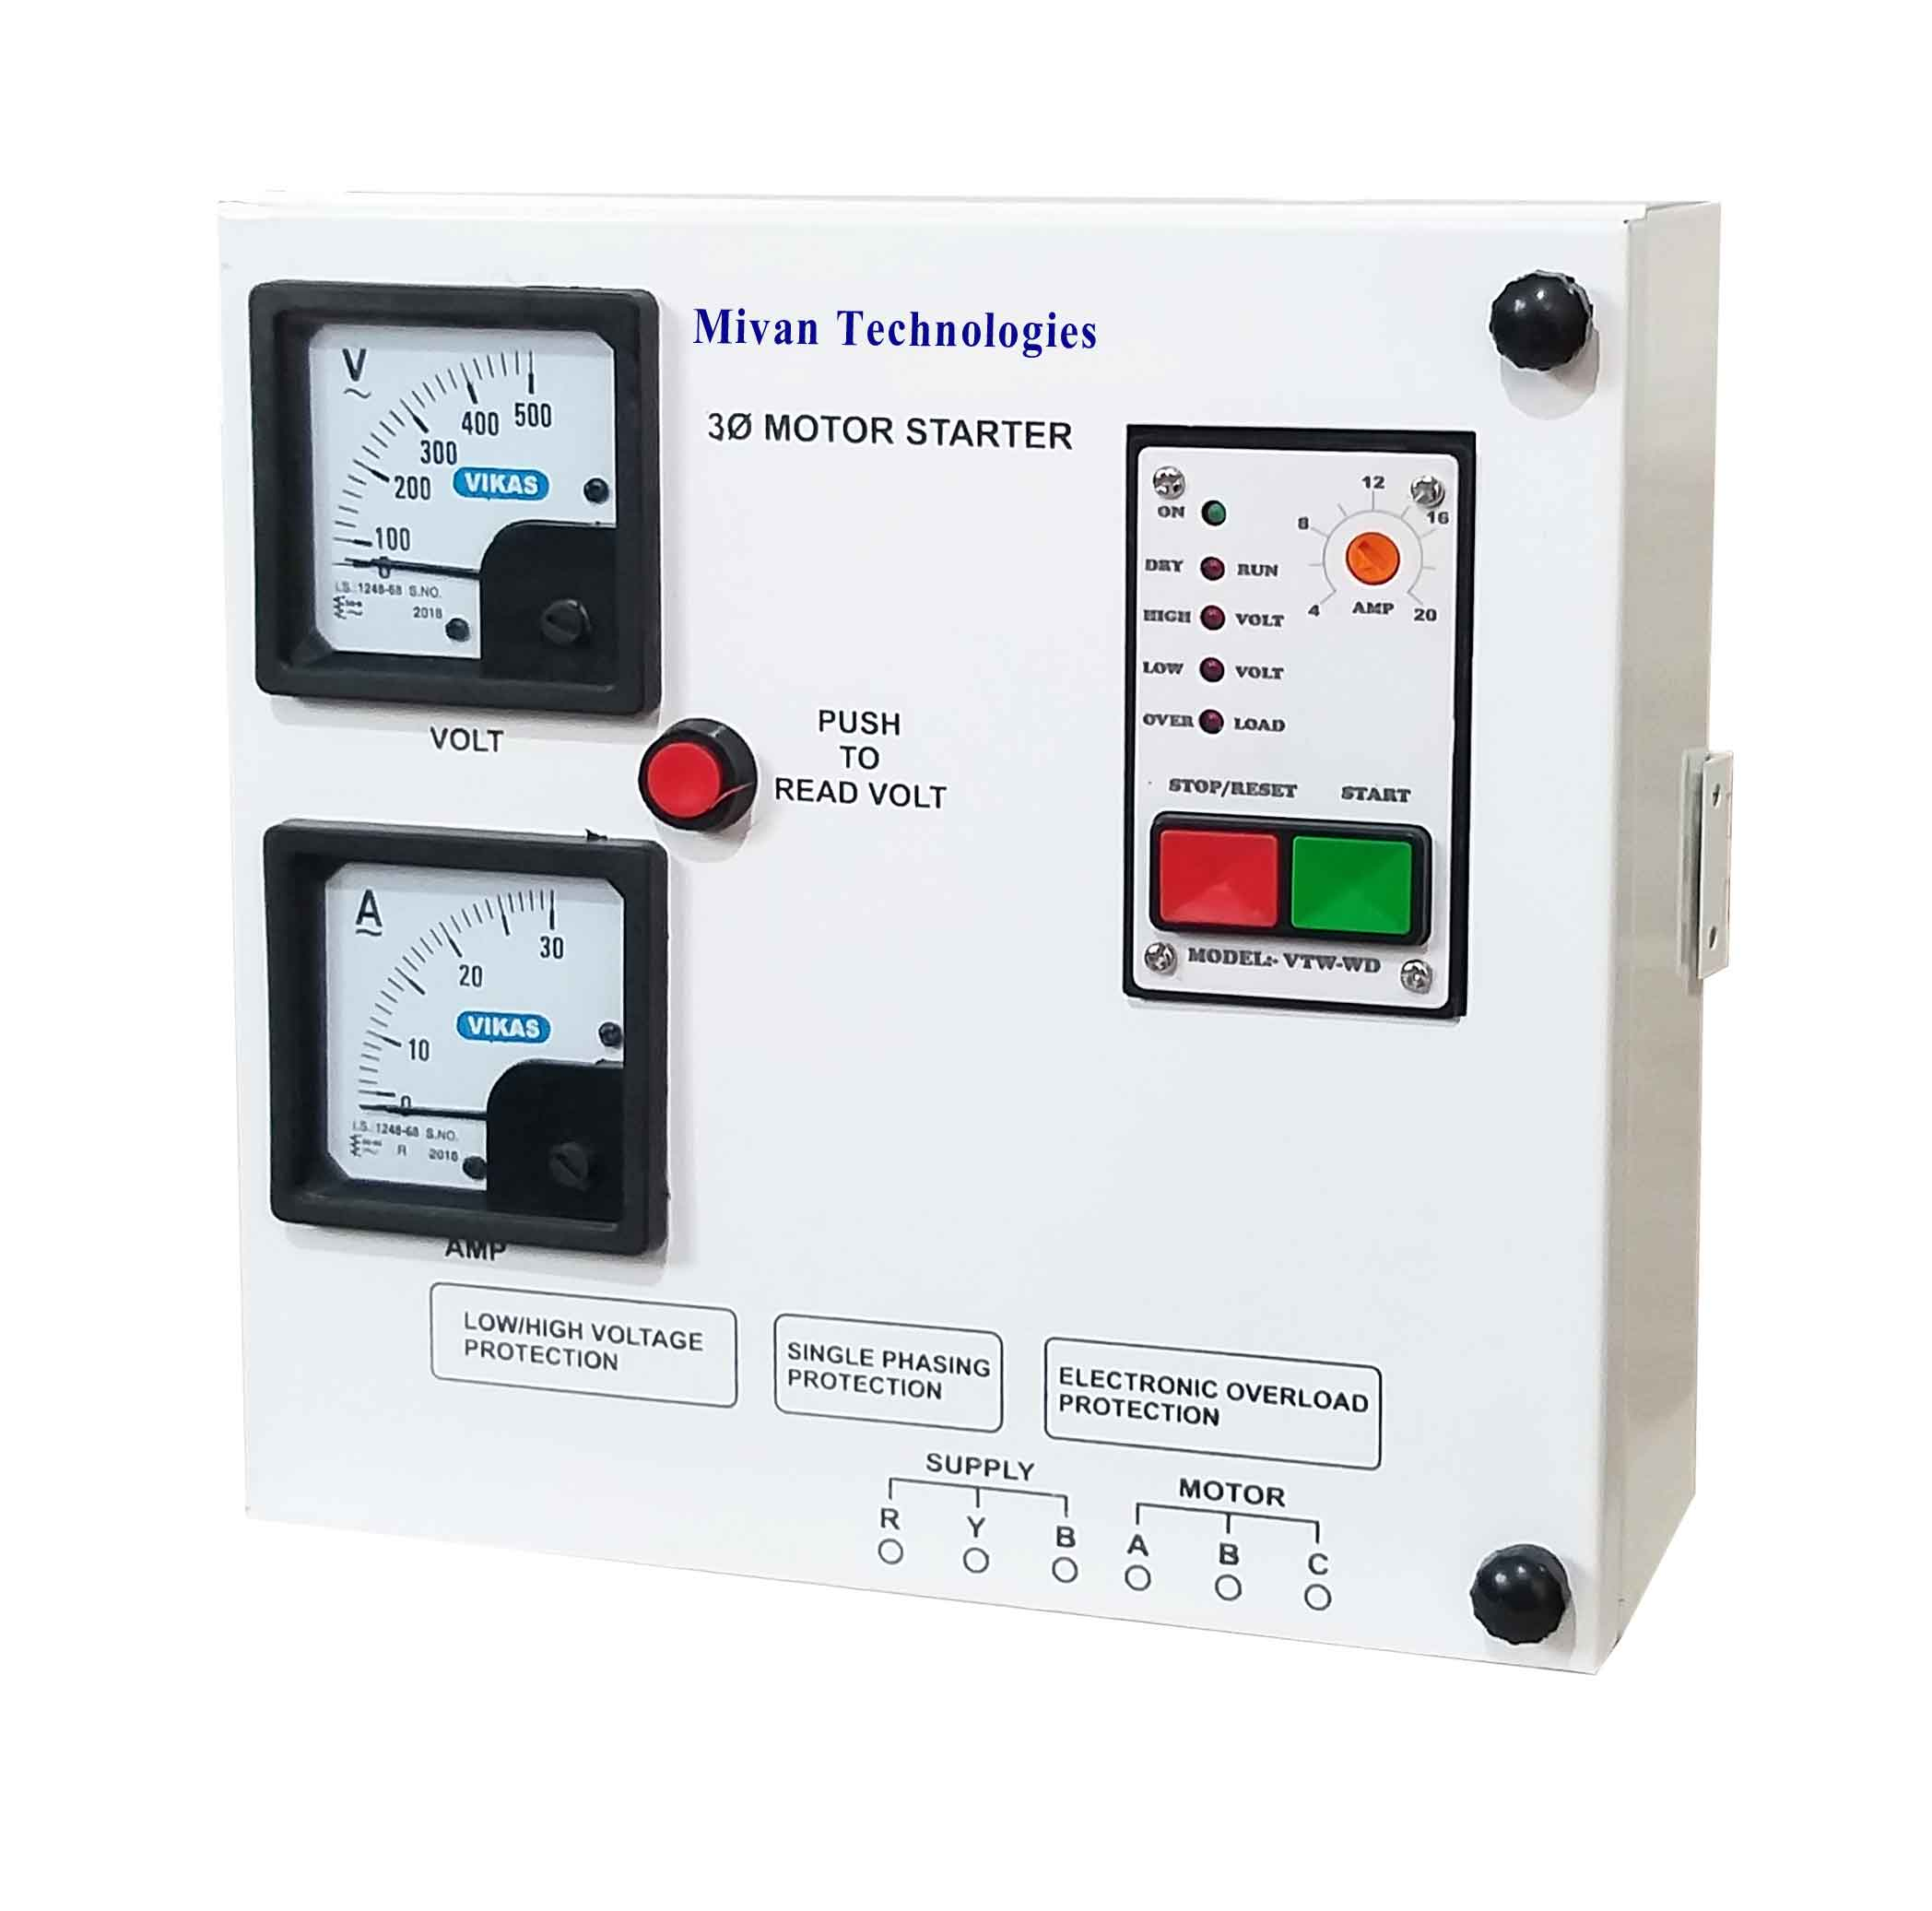 3 phase DOL electronic starter for 3 phase motor with volt and ampere miter suitable up to 7.5 hp motor with all protections